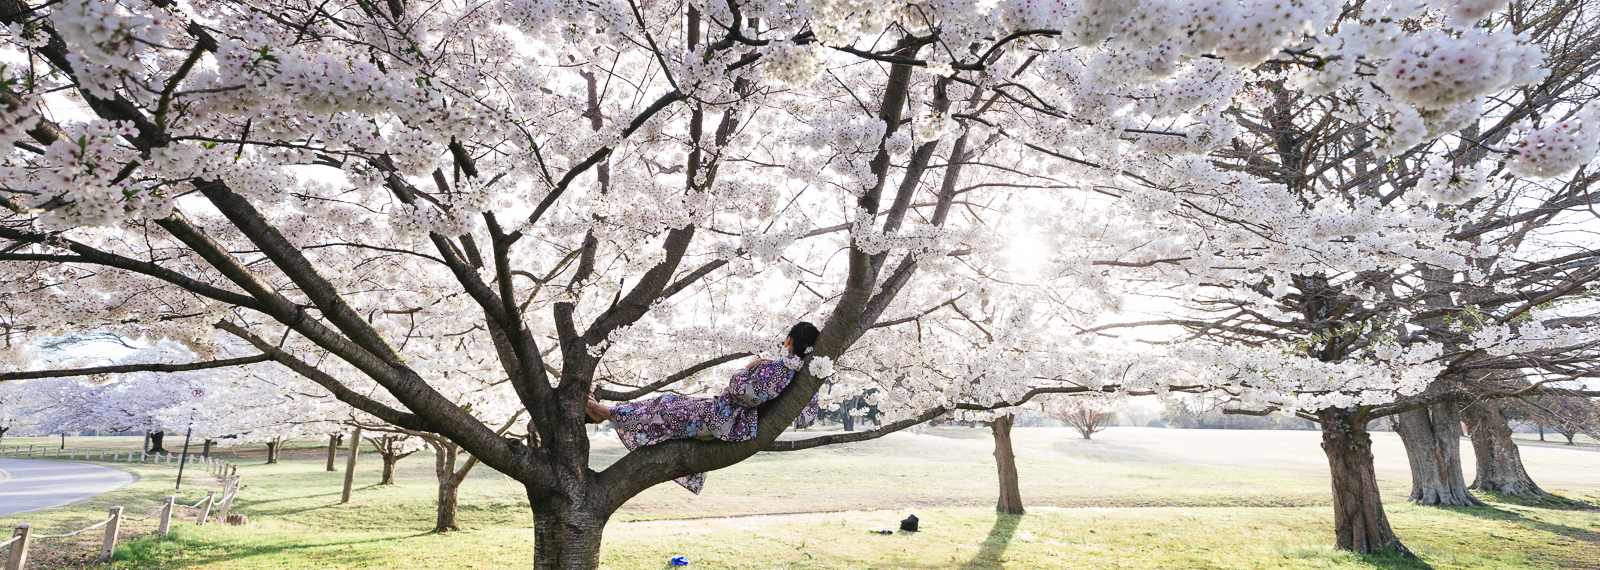 Iori Araya enjoys the cherry blossom trees outside of the Memphis Botanic Garden. (Ziggy Mack) <span class=&apos;image-credits&apos;></span>